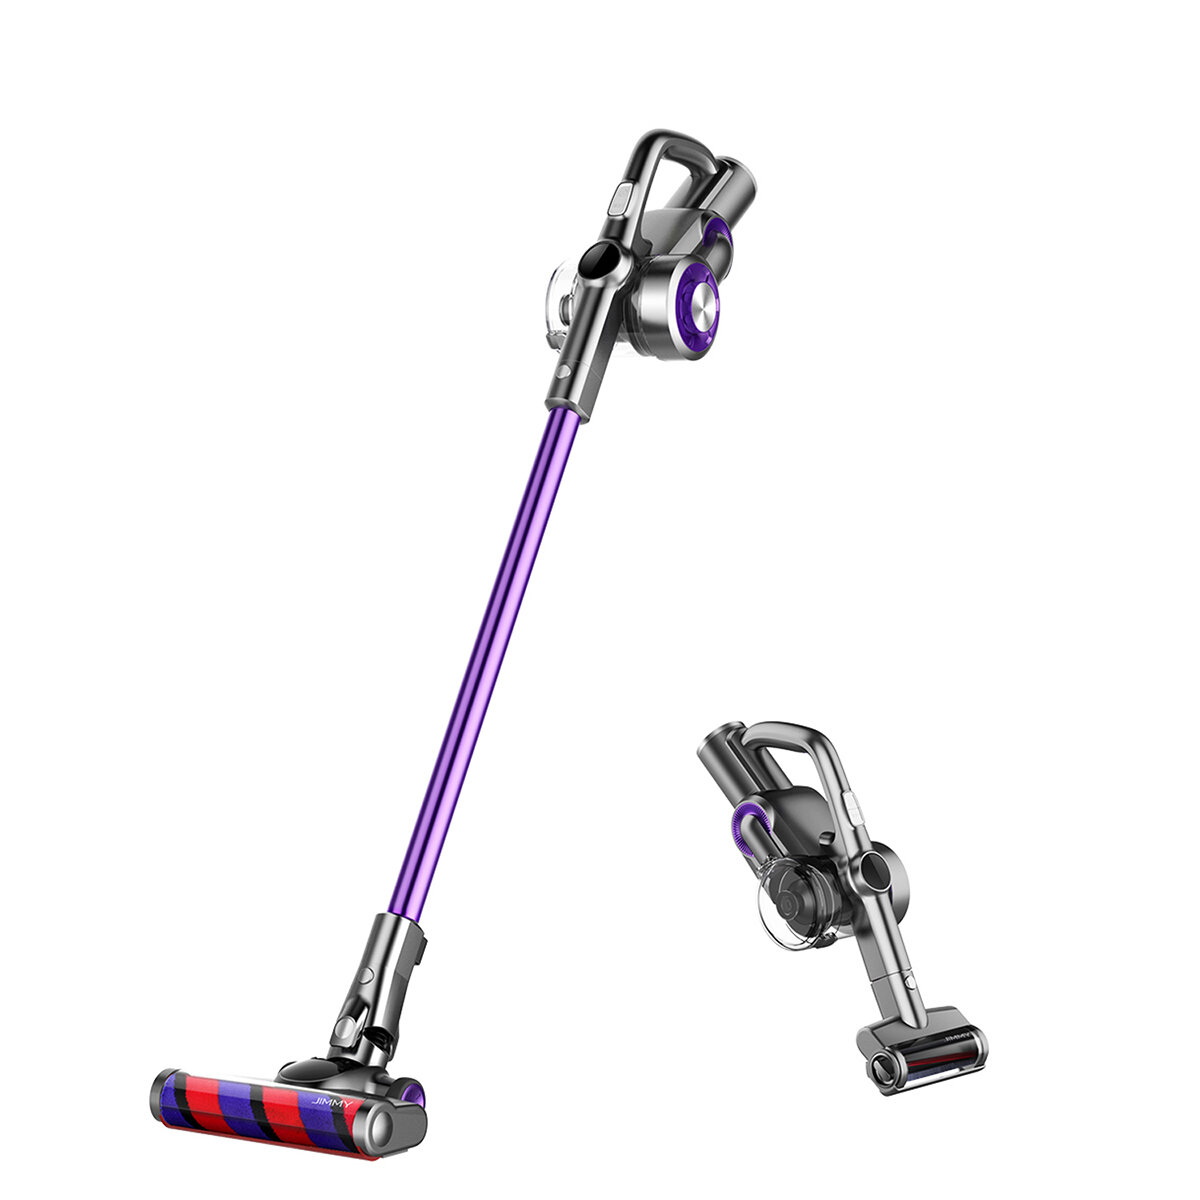 JIMMY H8 Pro Cordless Stick Handheld Vacuum Cleaner 4 Mode Adjustment 25000Pa Powerful Suction 160AW Brushless Motor Lightweight for Home Hard Floor Carpet Car Pet LED Display Low Noise